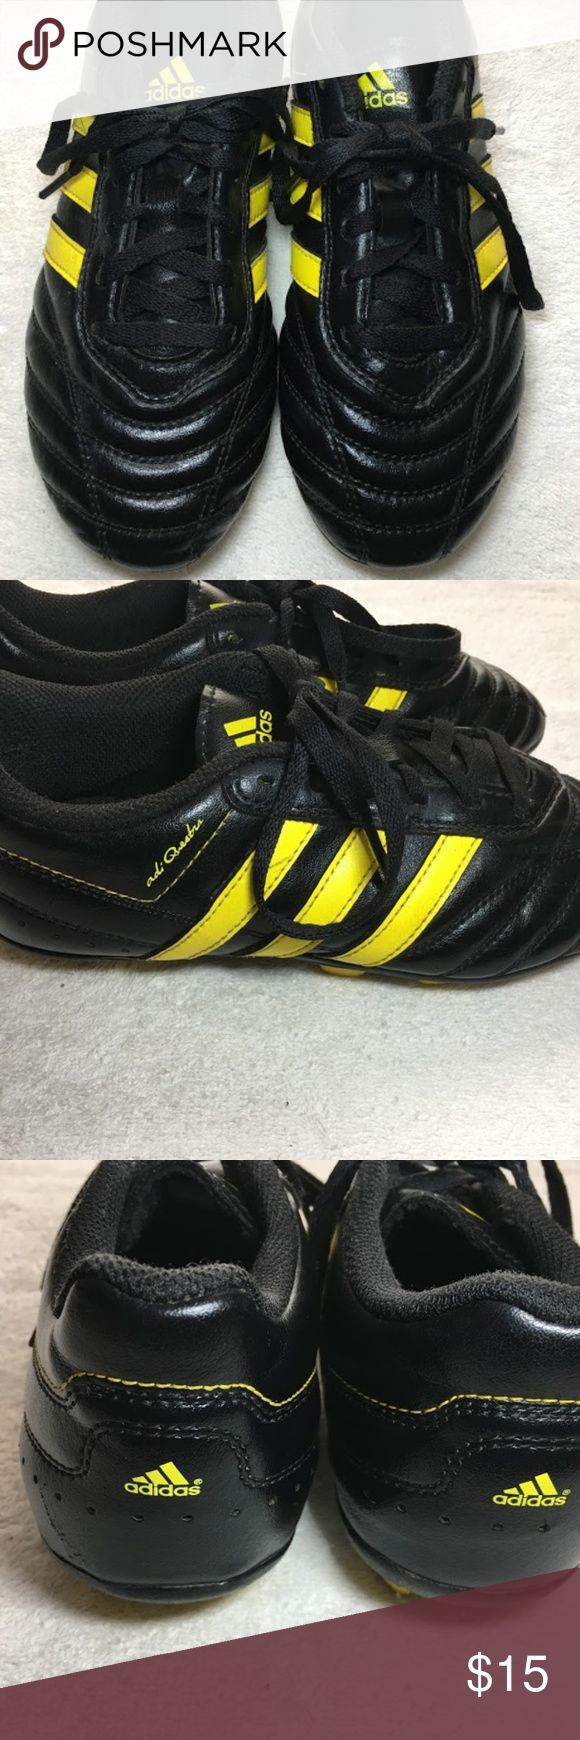 ADIDAS Adi Questra Youth Soccer Cleats size 2.5 Pre-Owned Excellent condition Adi Questra Youth Soccer cleats.  Size 2.5 G18640 Black and Yellow adidas Shoes Sneakers